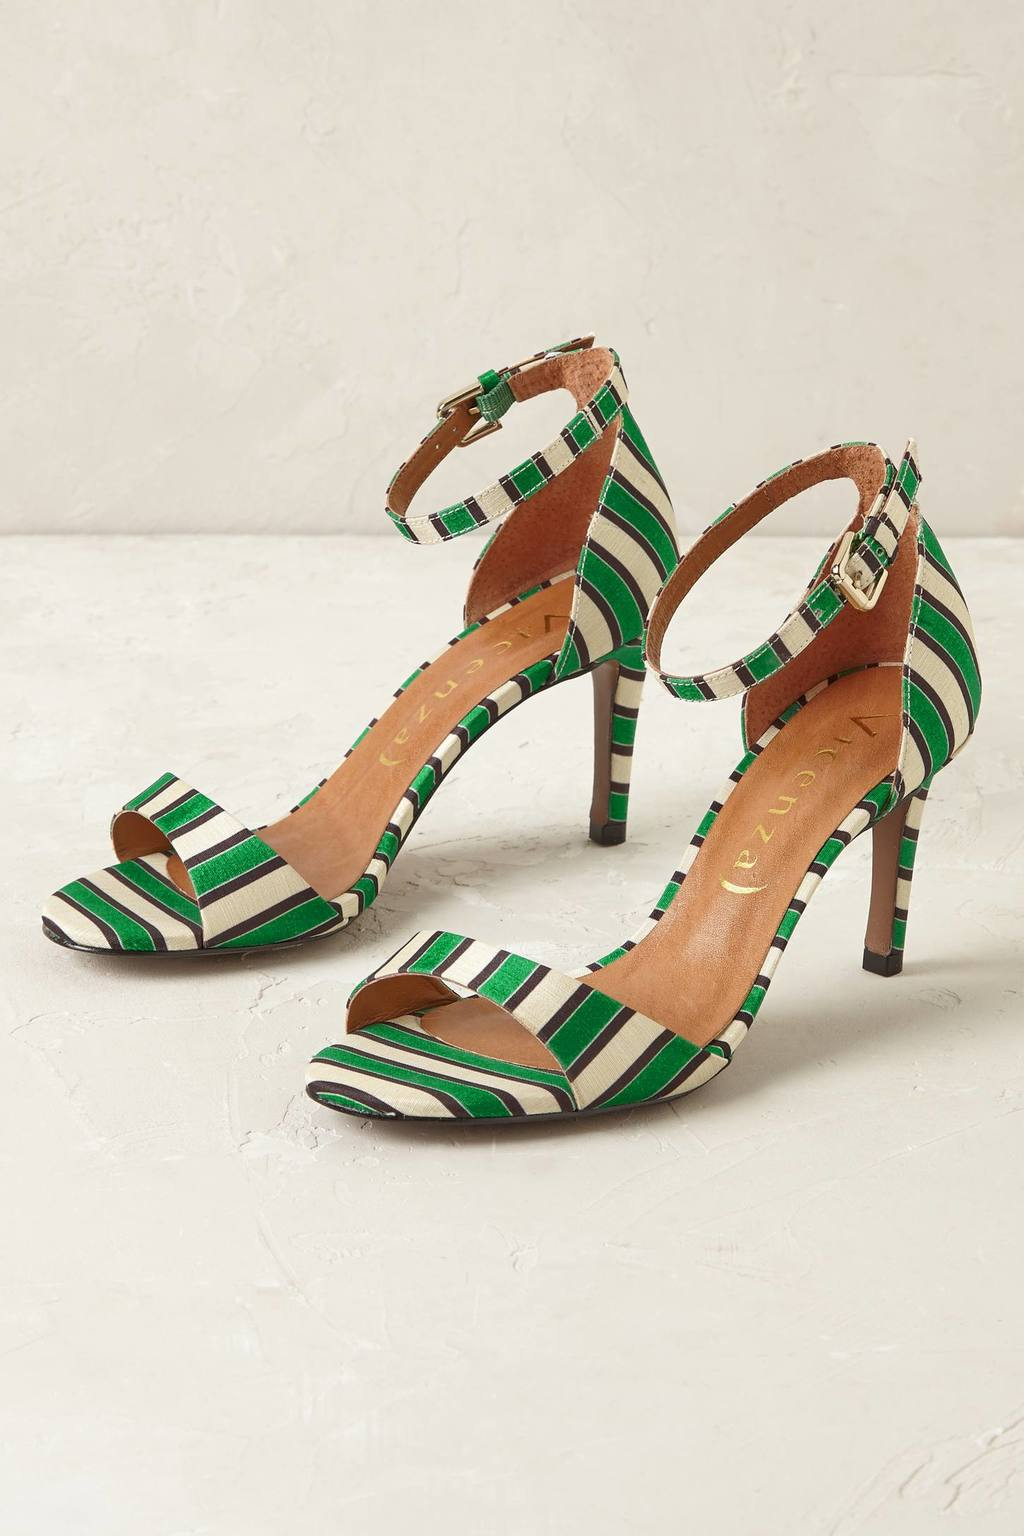 Emerald Striped Heels - predominant colour: emerald green; occasions: occasion, creative work; material: fabric; heel height: high; heel: stiletto; toe: open toe/peeptoe; style: standard; finish: plain; pattern: striped; season: s/s 2016